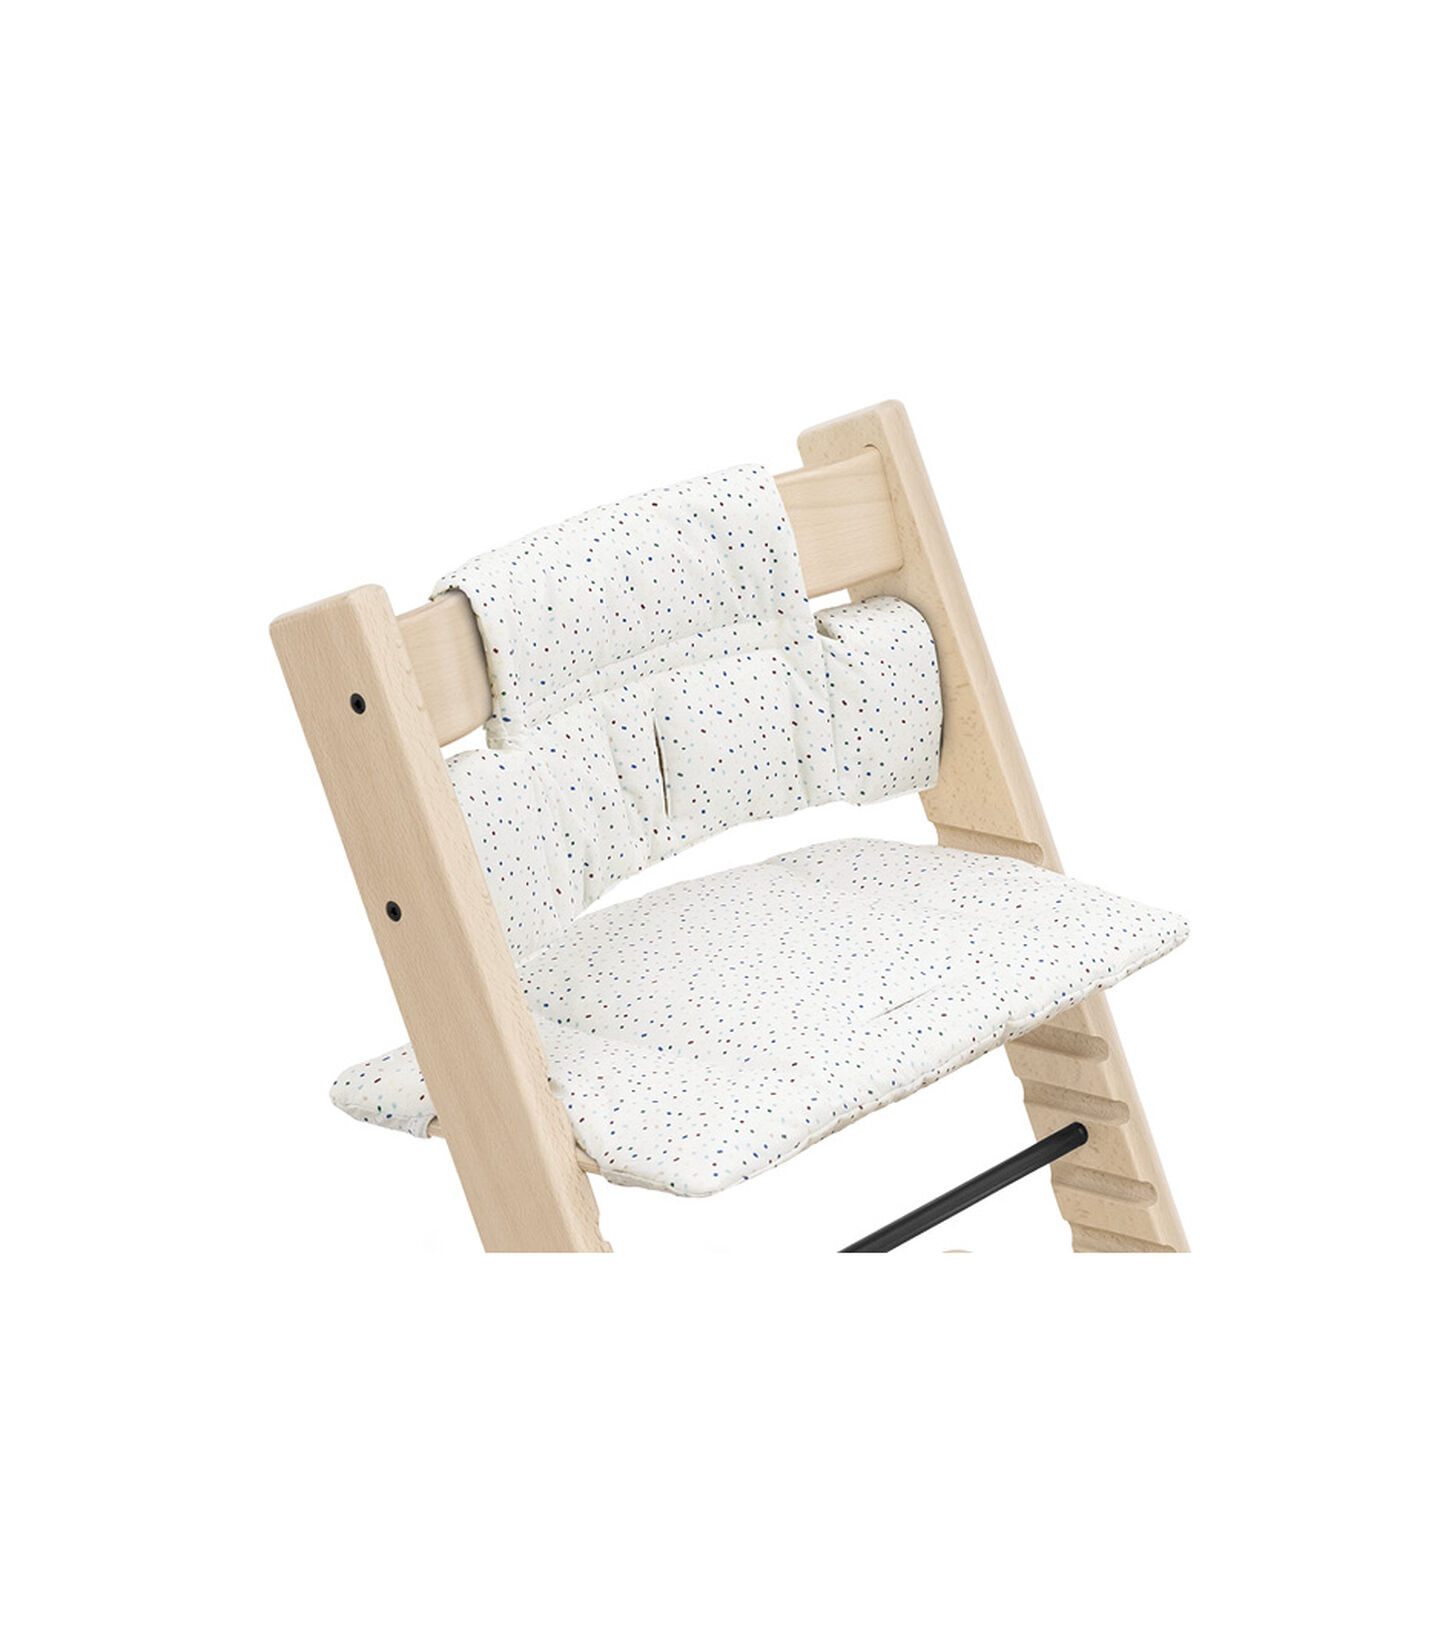 Tripp Trapp® Classic Cushion Soft Sprinkle, Soft Sprinkle, mainview view 1